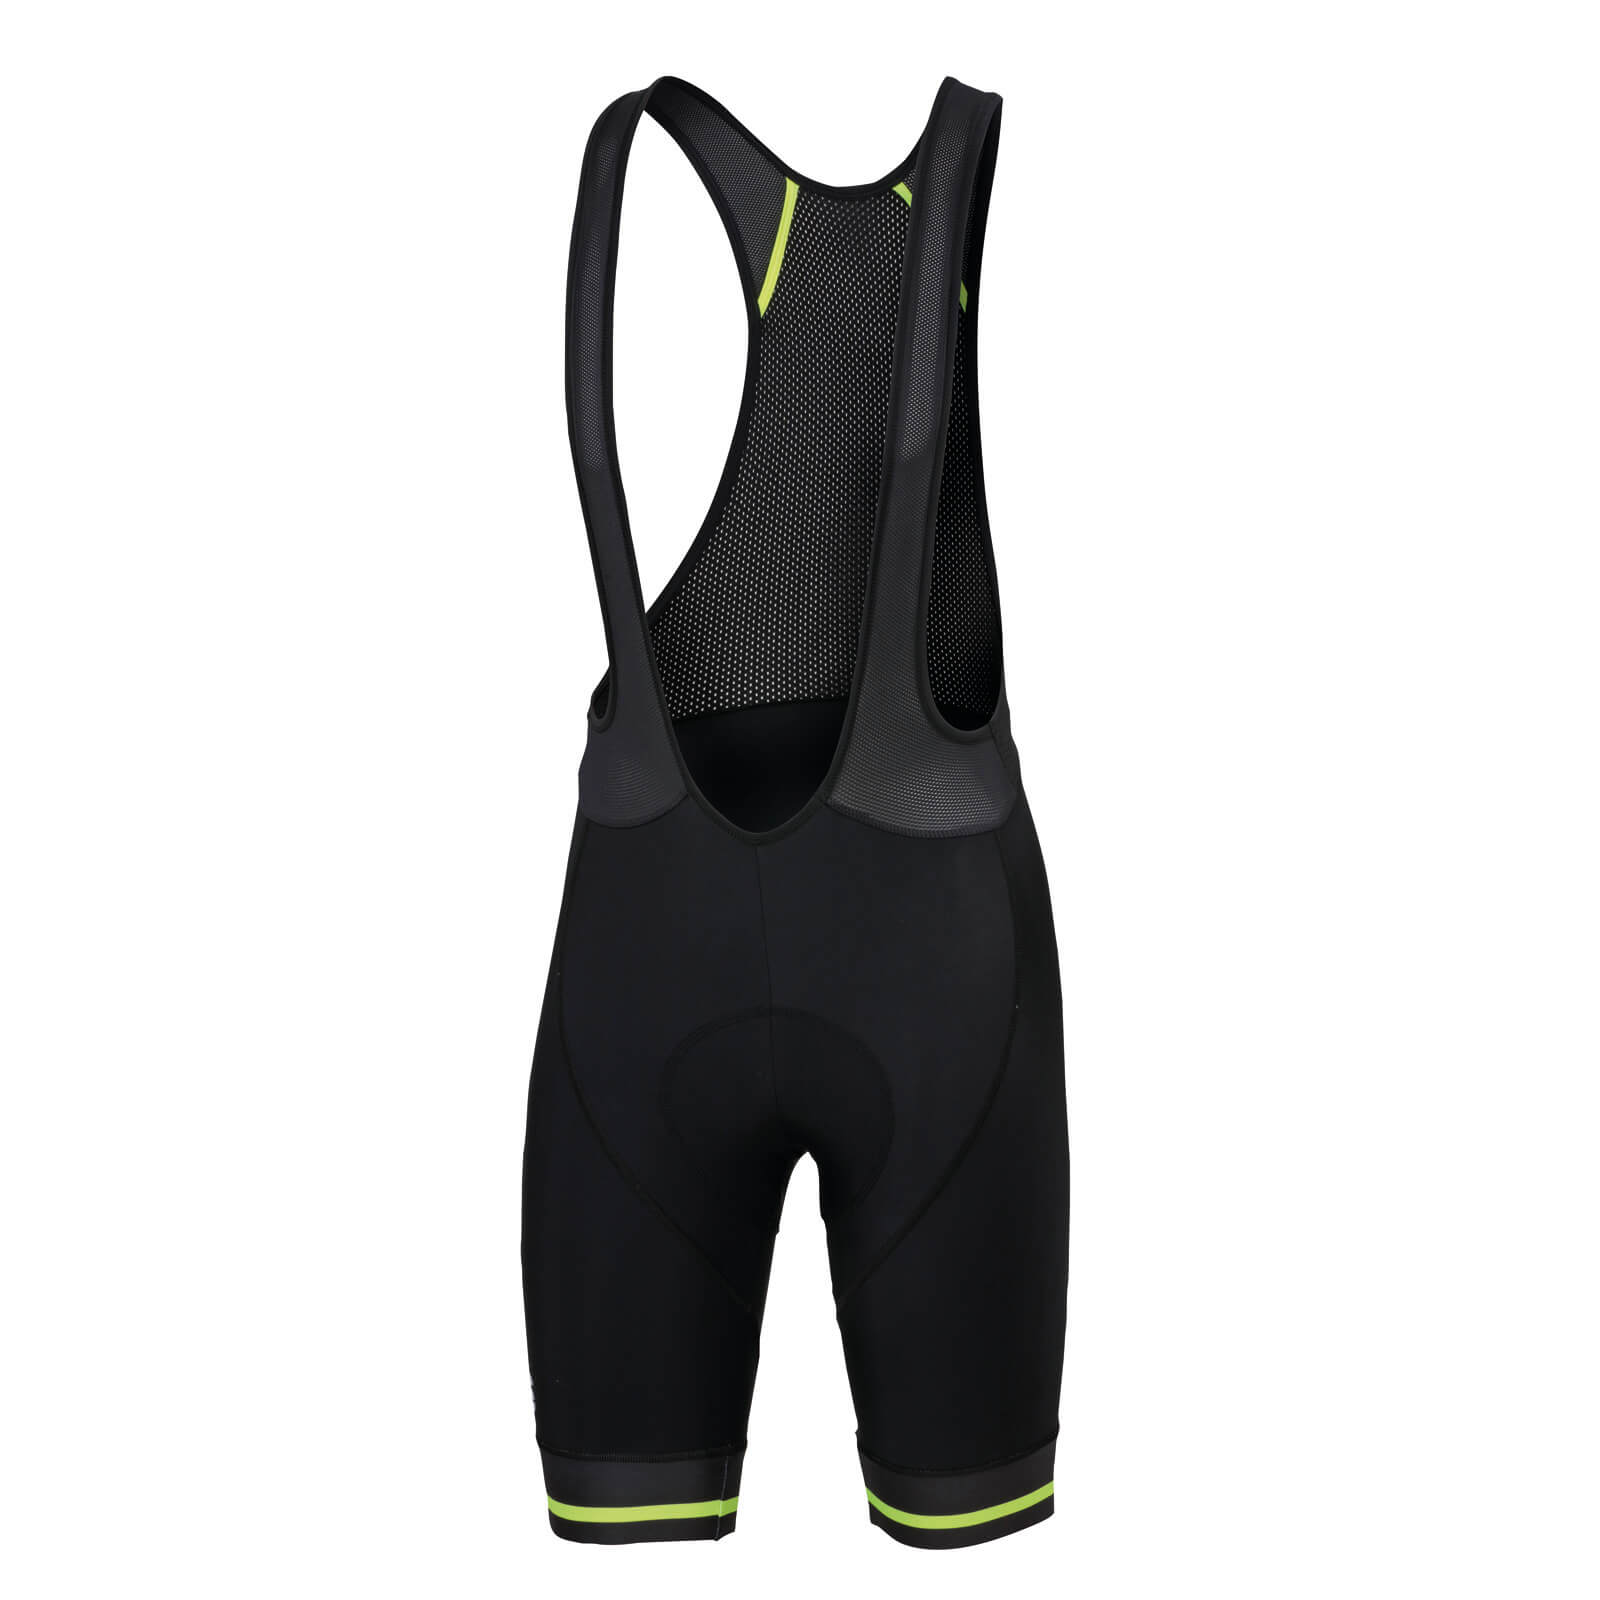 Sportful Classic Race Bib Shorts - Black/Yellow Fluo